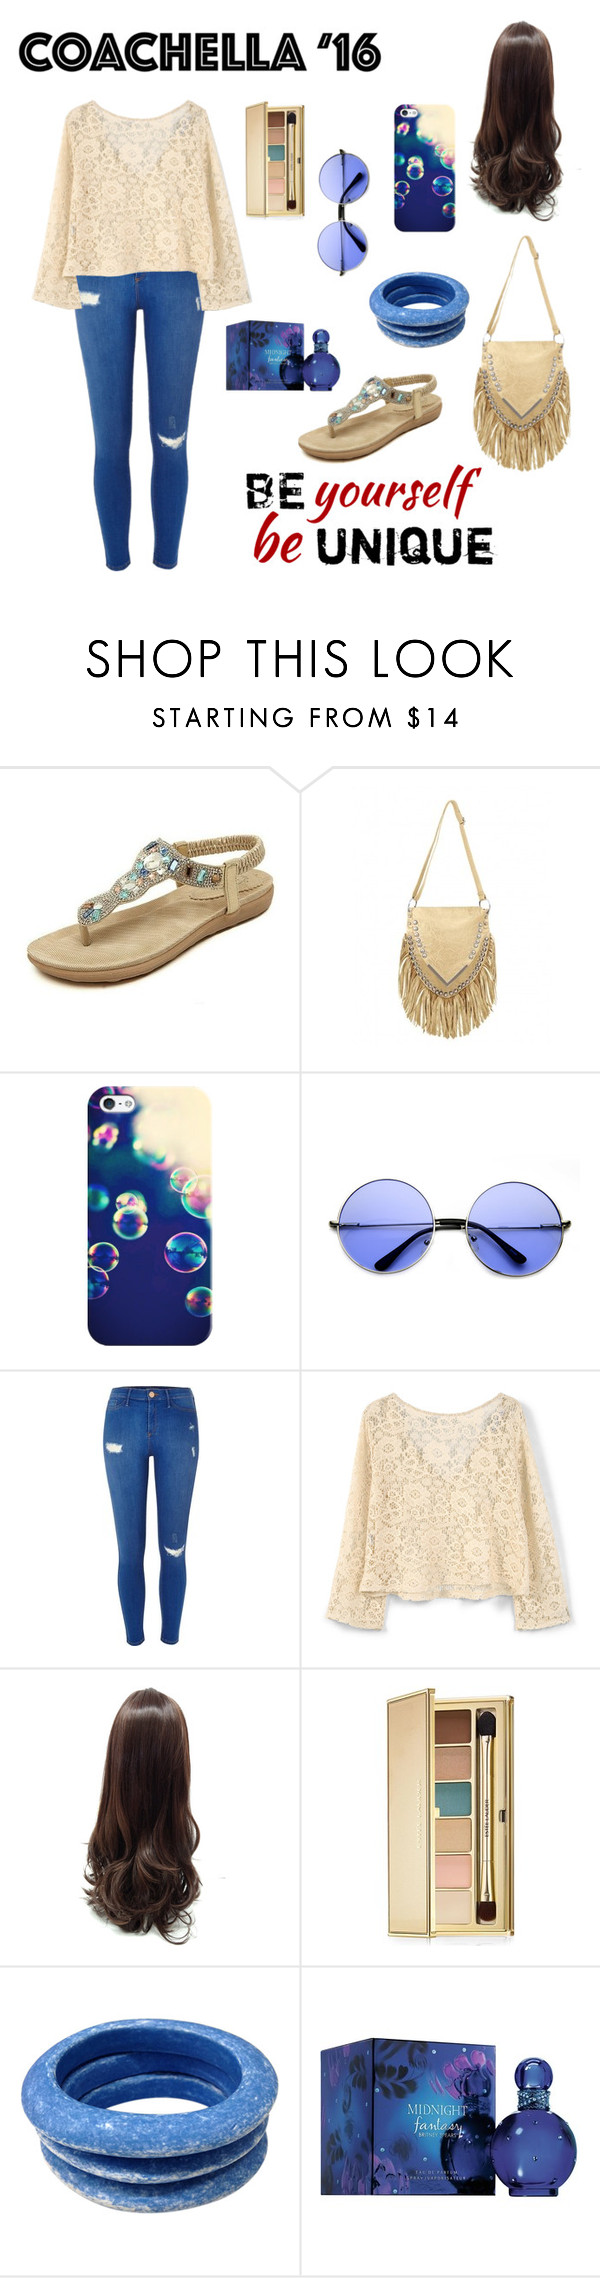 """coachella"" by candynena228 ❤ liked on Polyvore featuring Casetify, River Island, MANGO, Estée Lauder, Tuleste and Britney Spears"